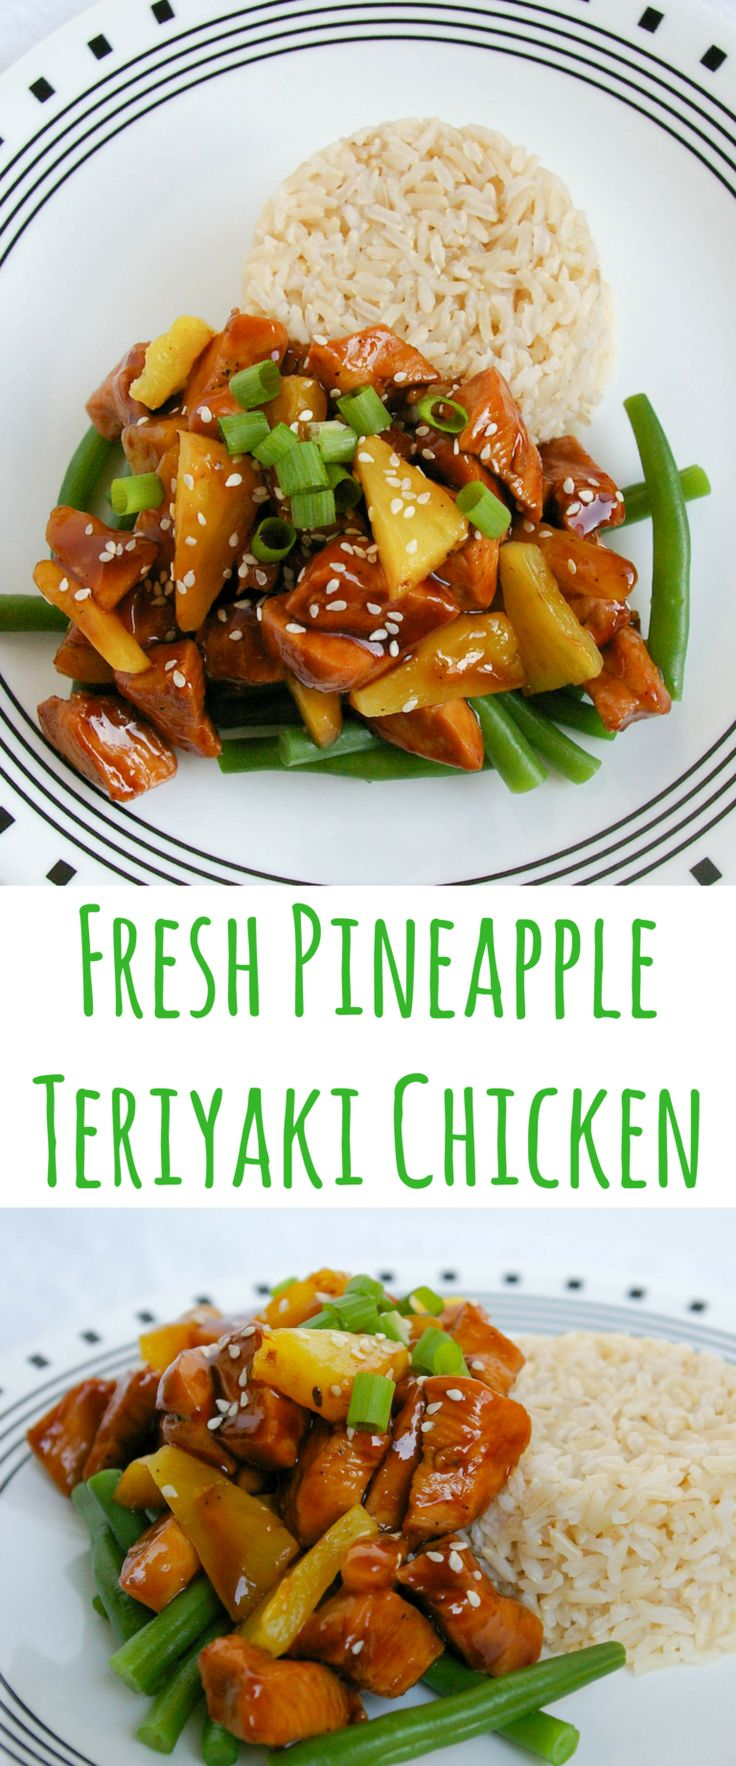 This Fresh Pineapple Teriyaki Chicken is sweet and savory. A quick weeknight dinner that's as easy as take out!